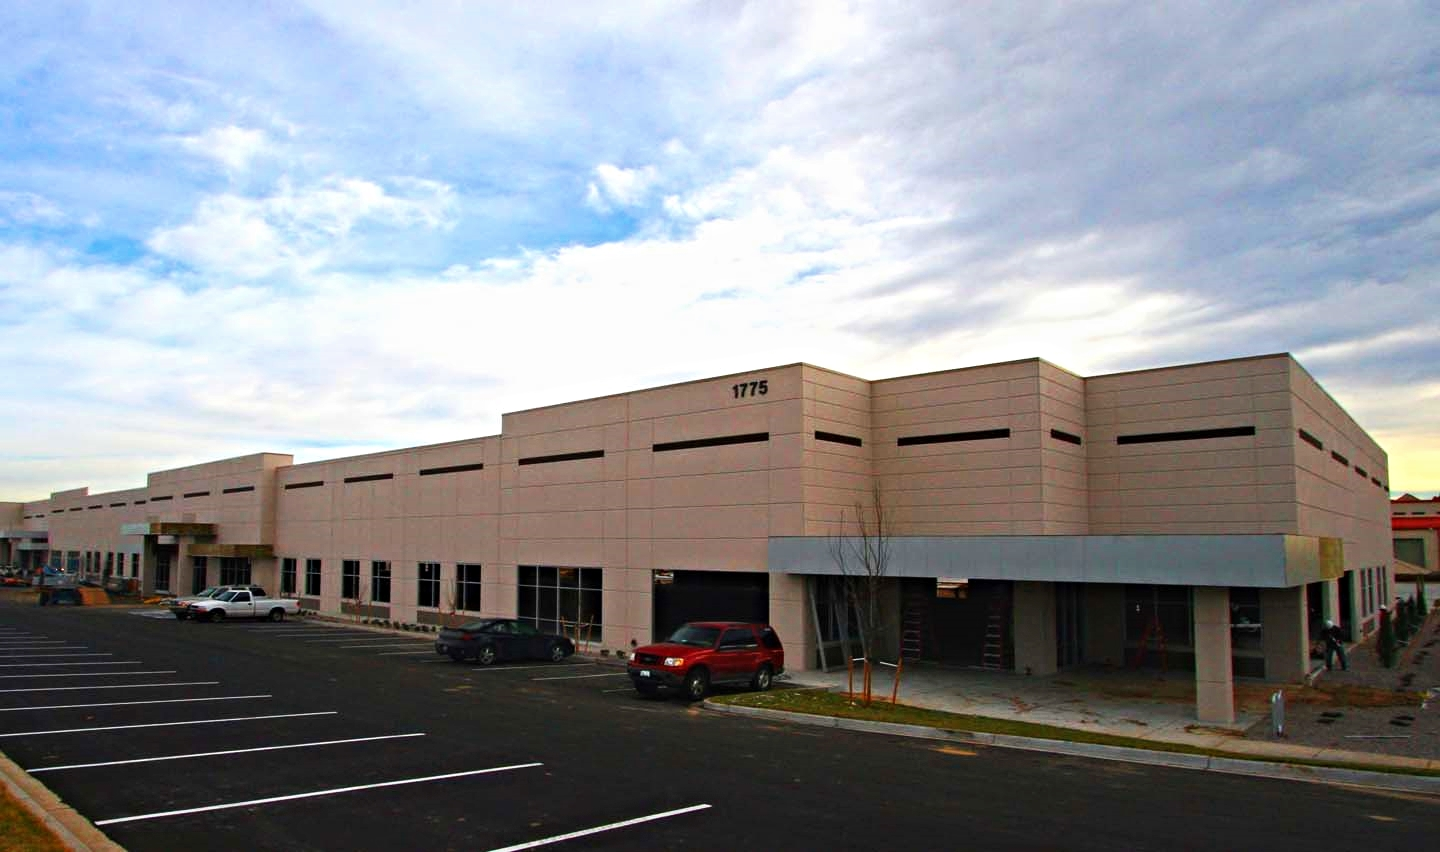 1775 CHERRY -   130,000 SF core and shell warehouse building that utilized a concrete tilt-wall system. Project included the complete site development of 9 acres.